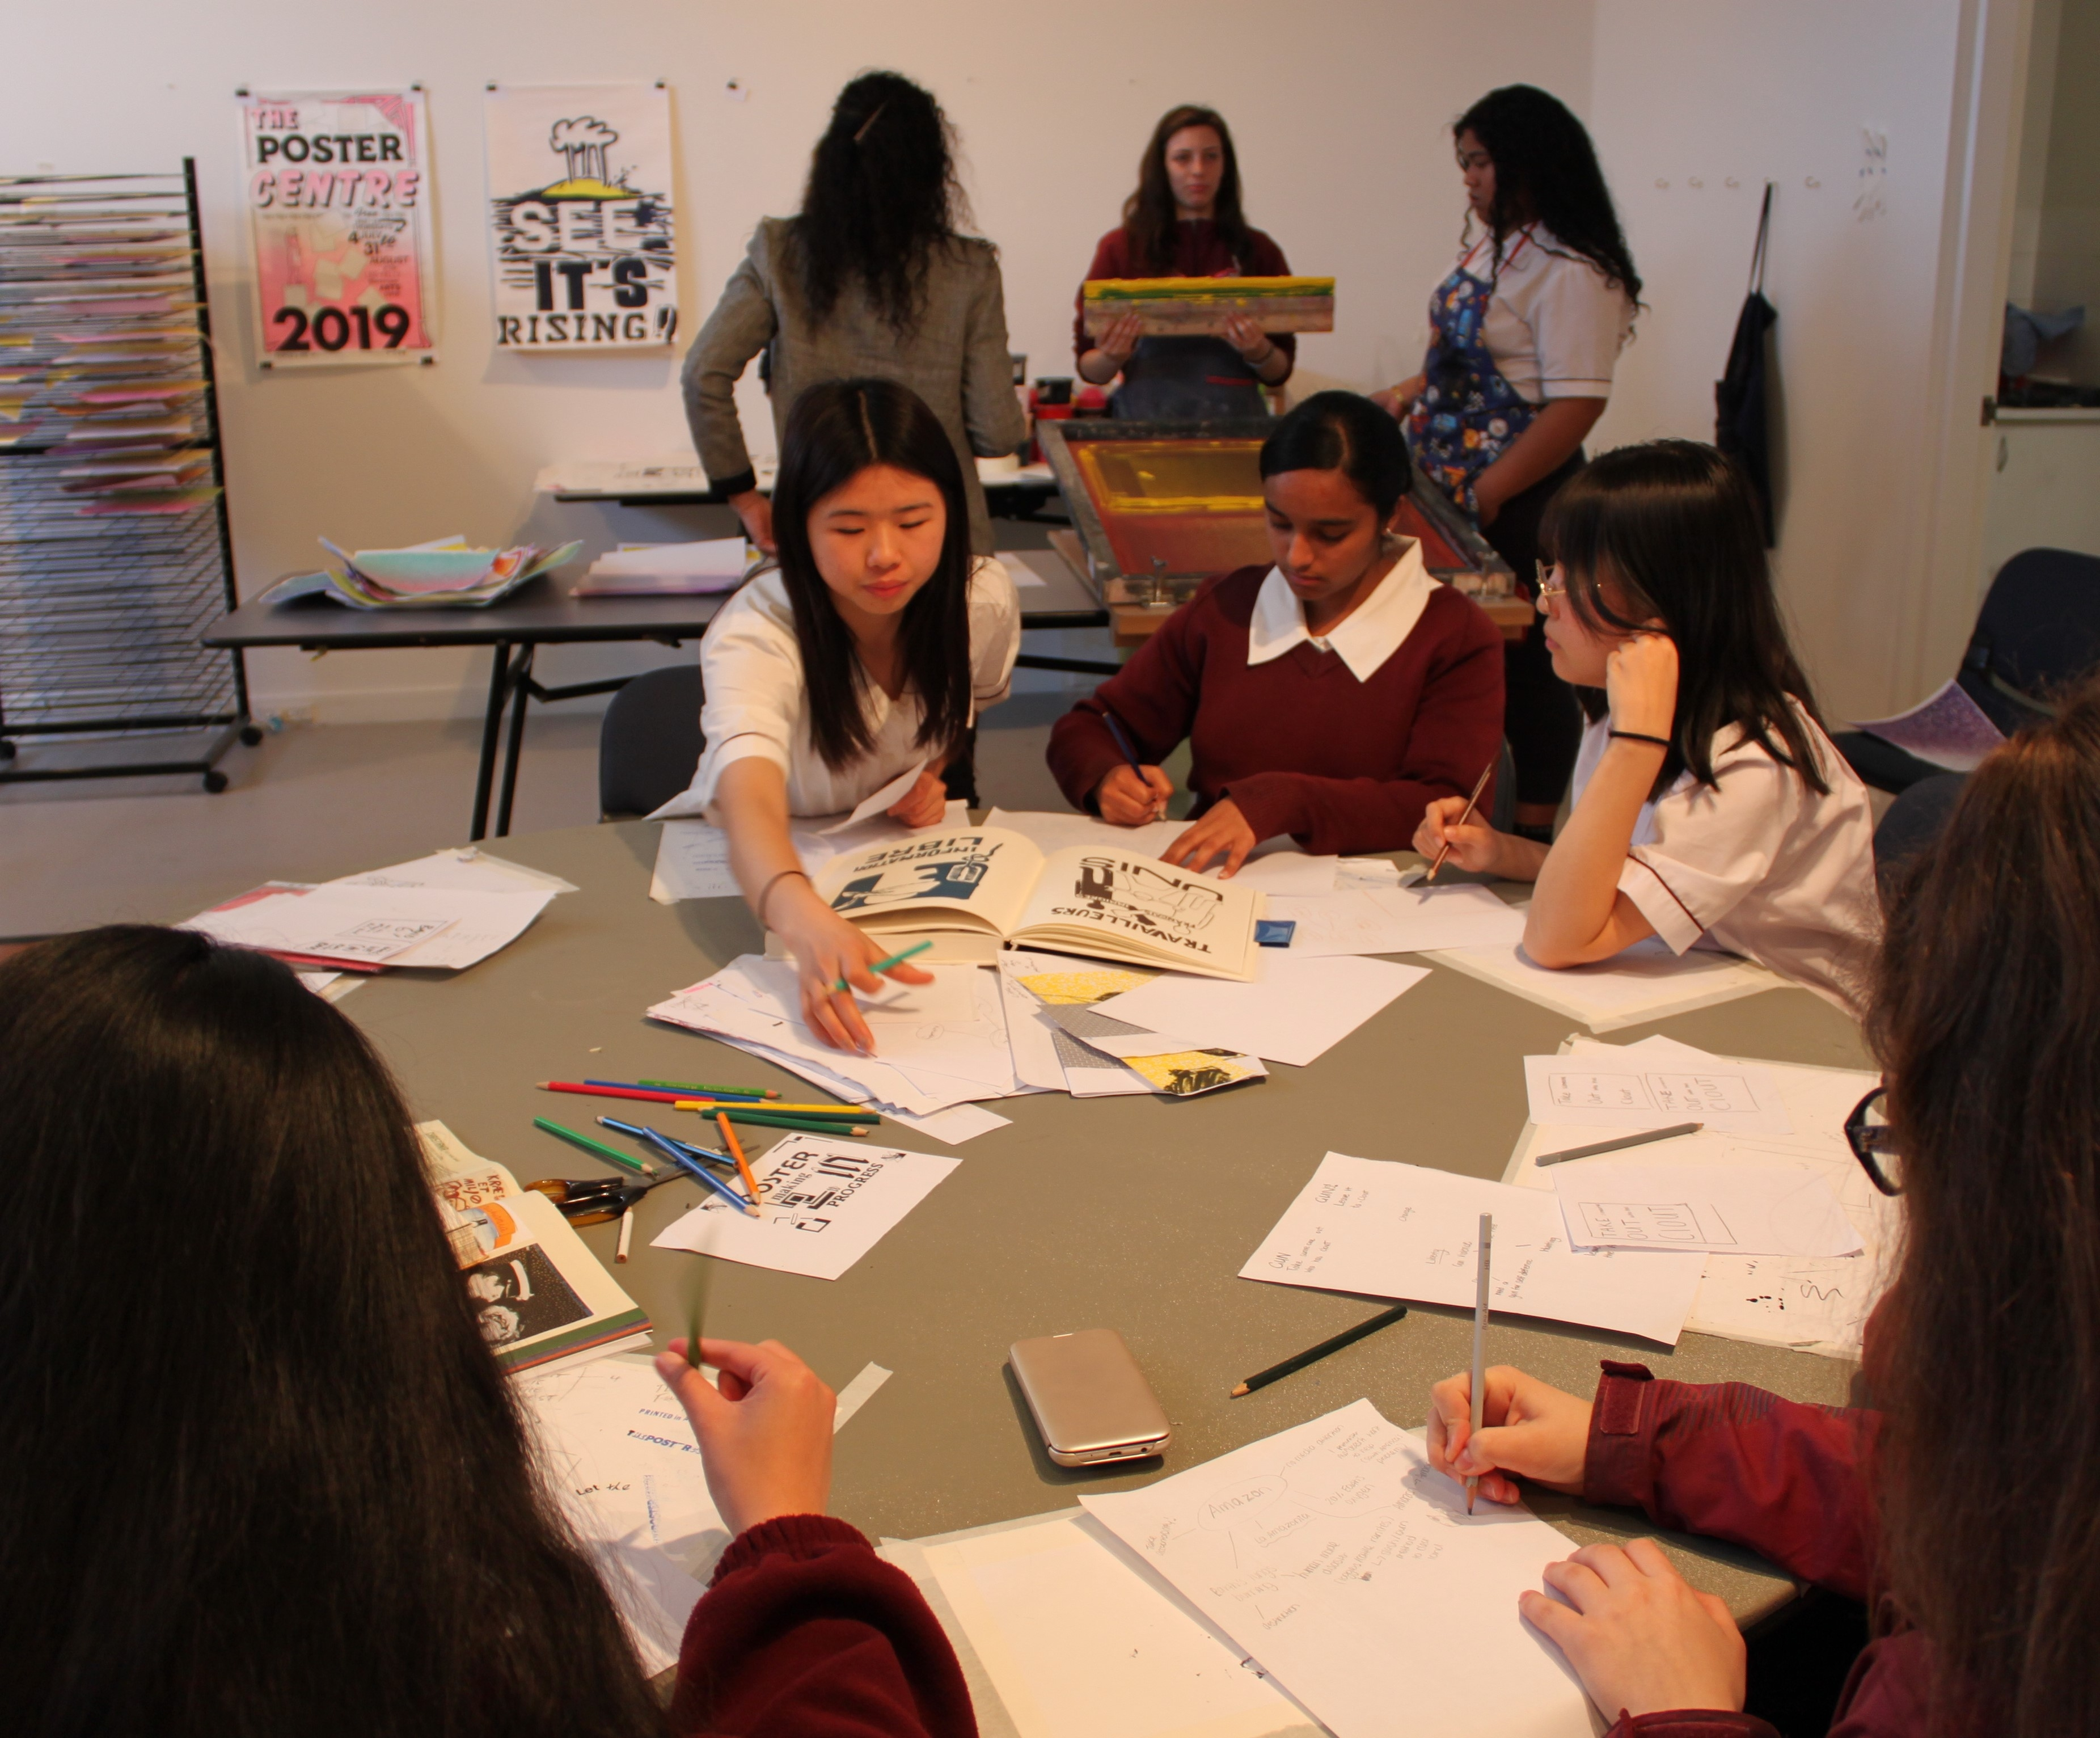 Group of high school students working on creative projects